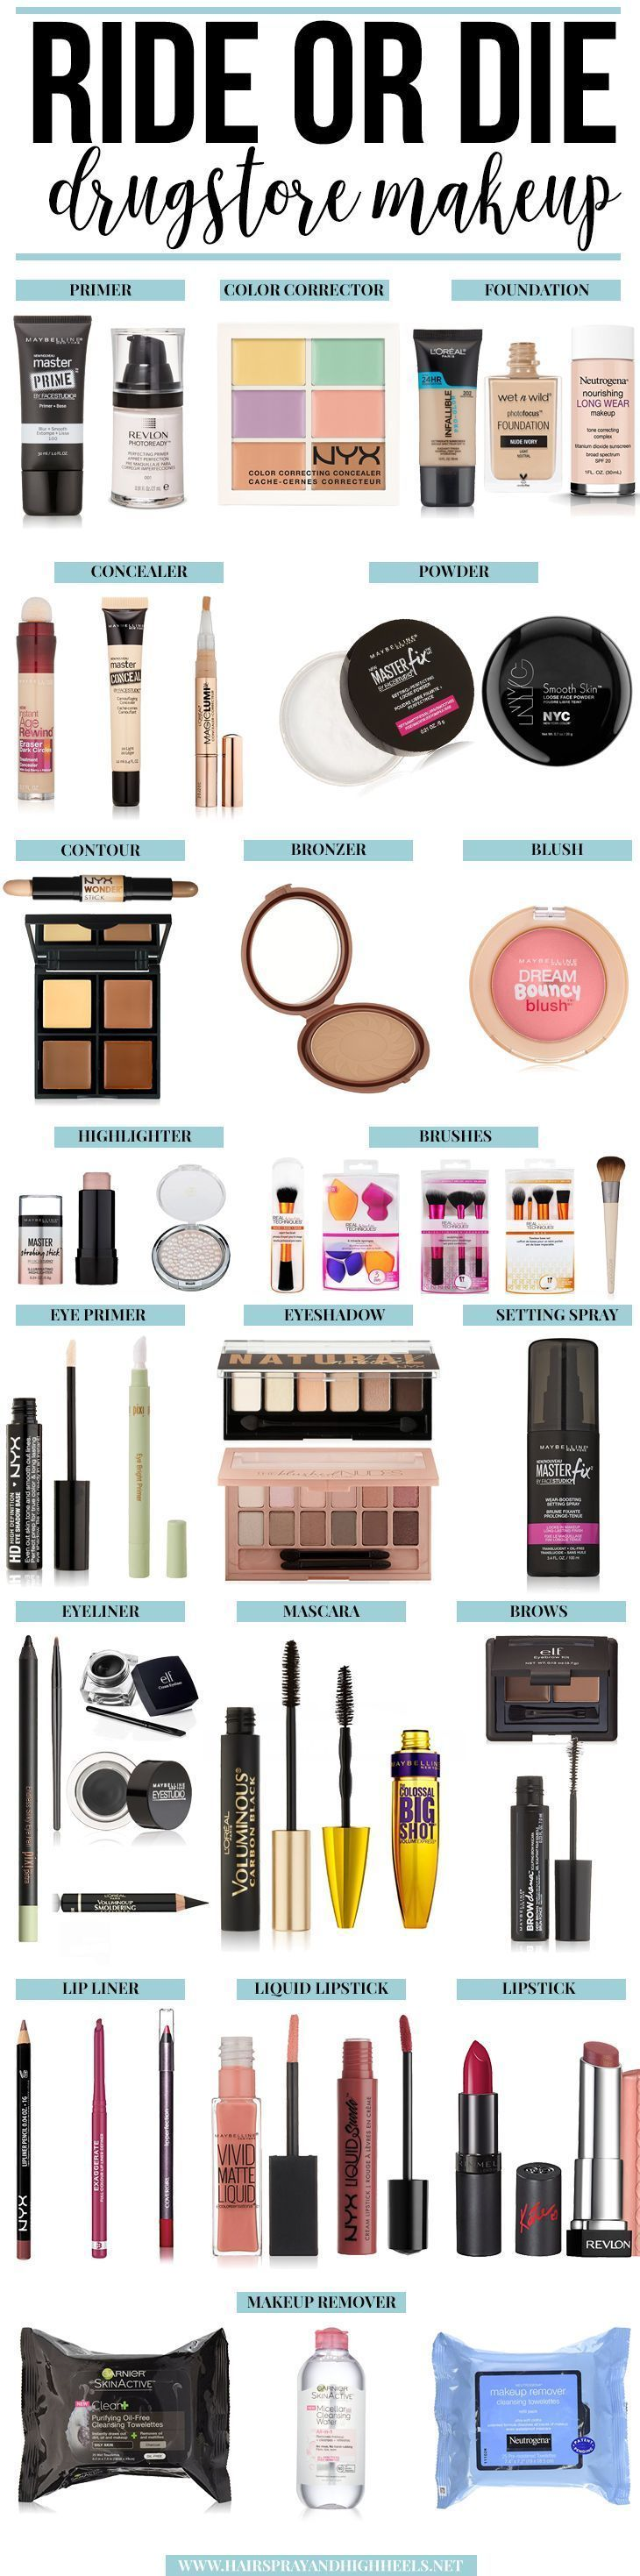 Ride Or Die Drugstore Makeup Products